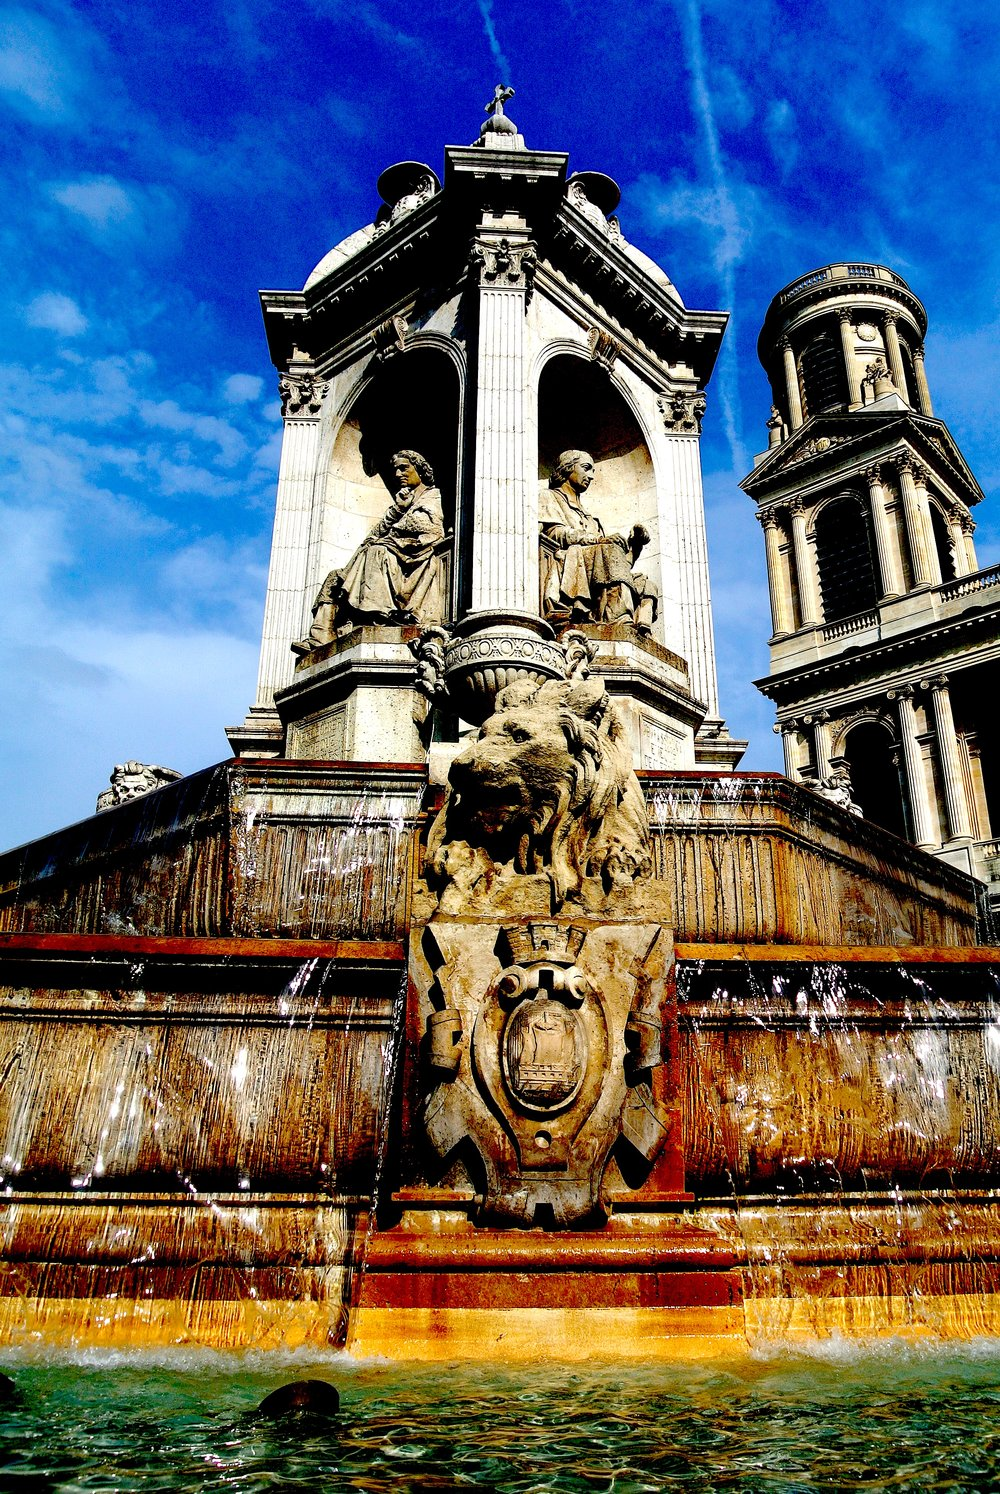 The impressive fountain in front of Saint-Sulpice, with one of its mismatched towers in the background